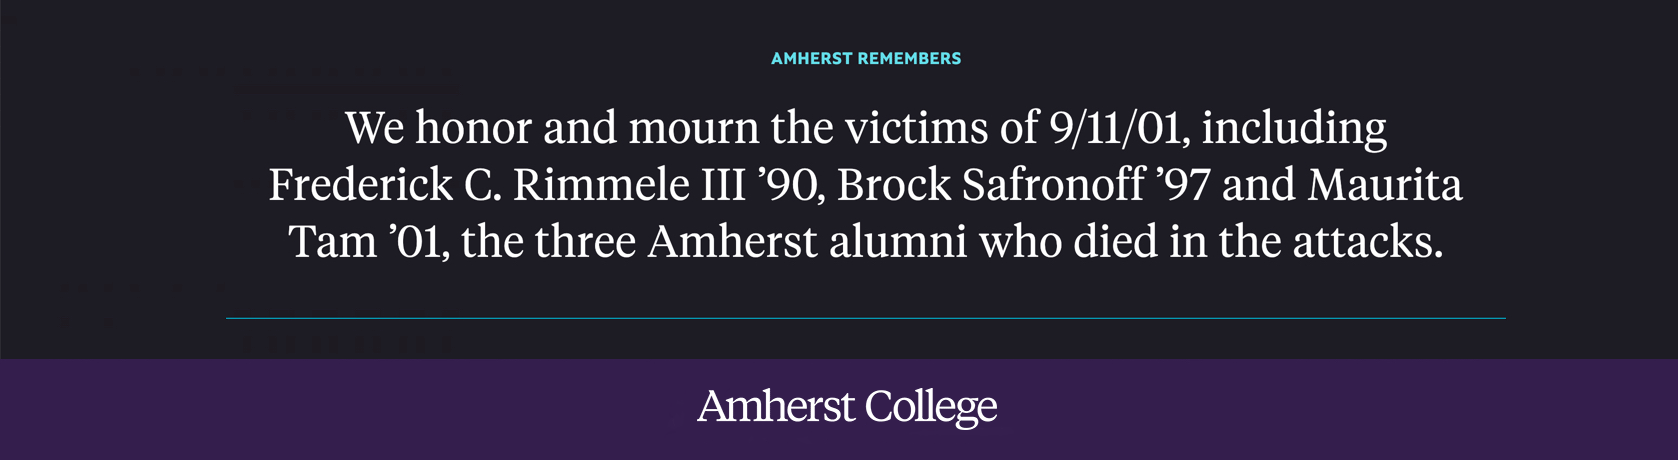 Amherst honors and mourns the victims of 9/11.